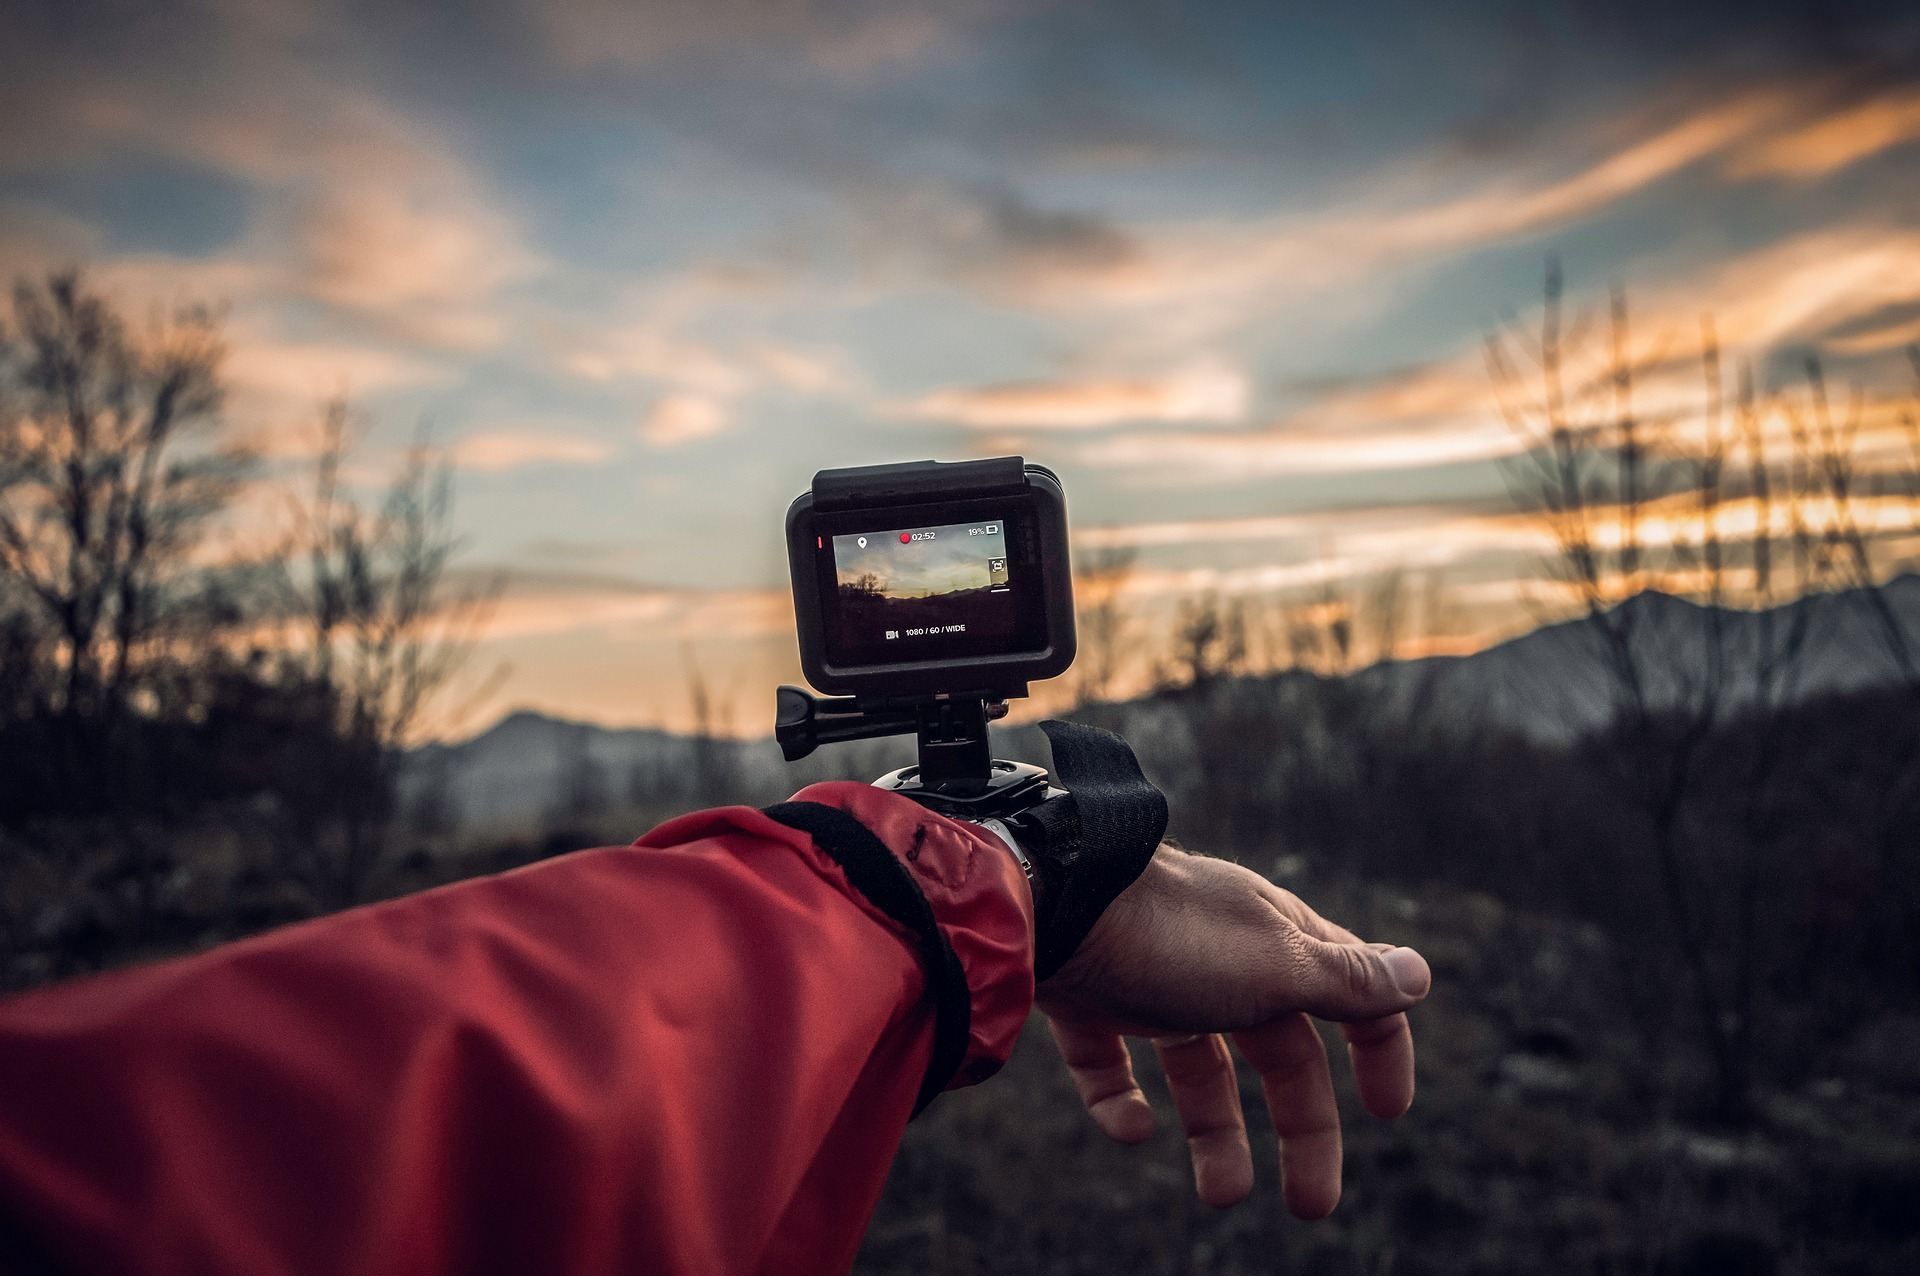 The hand of an athlete wearing a GoPro camera.